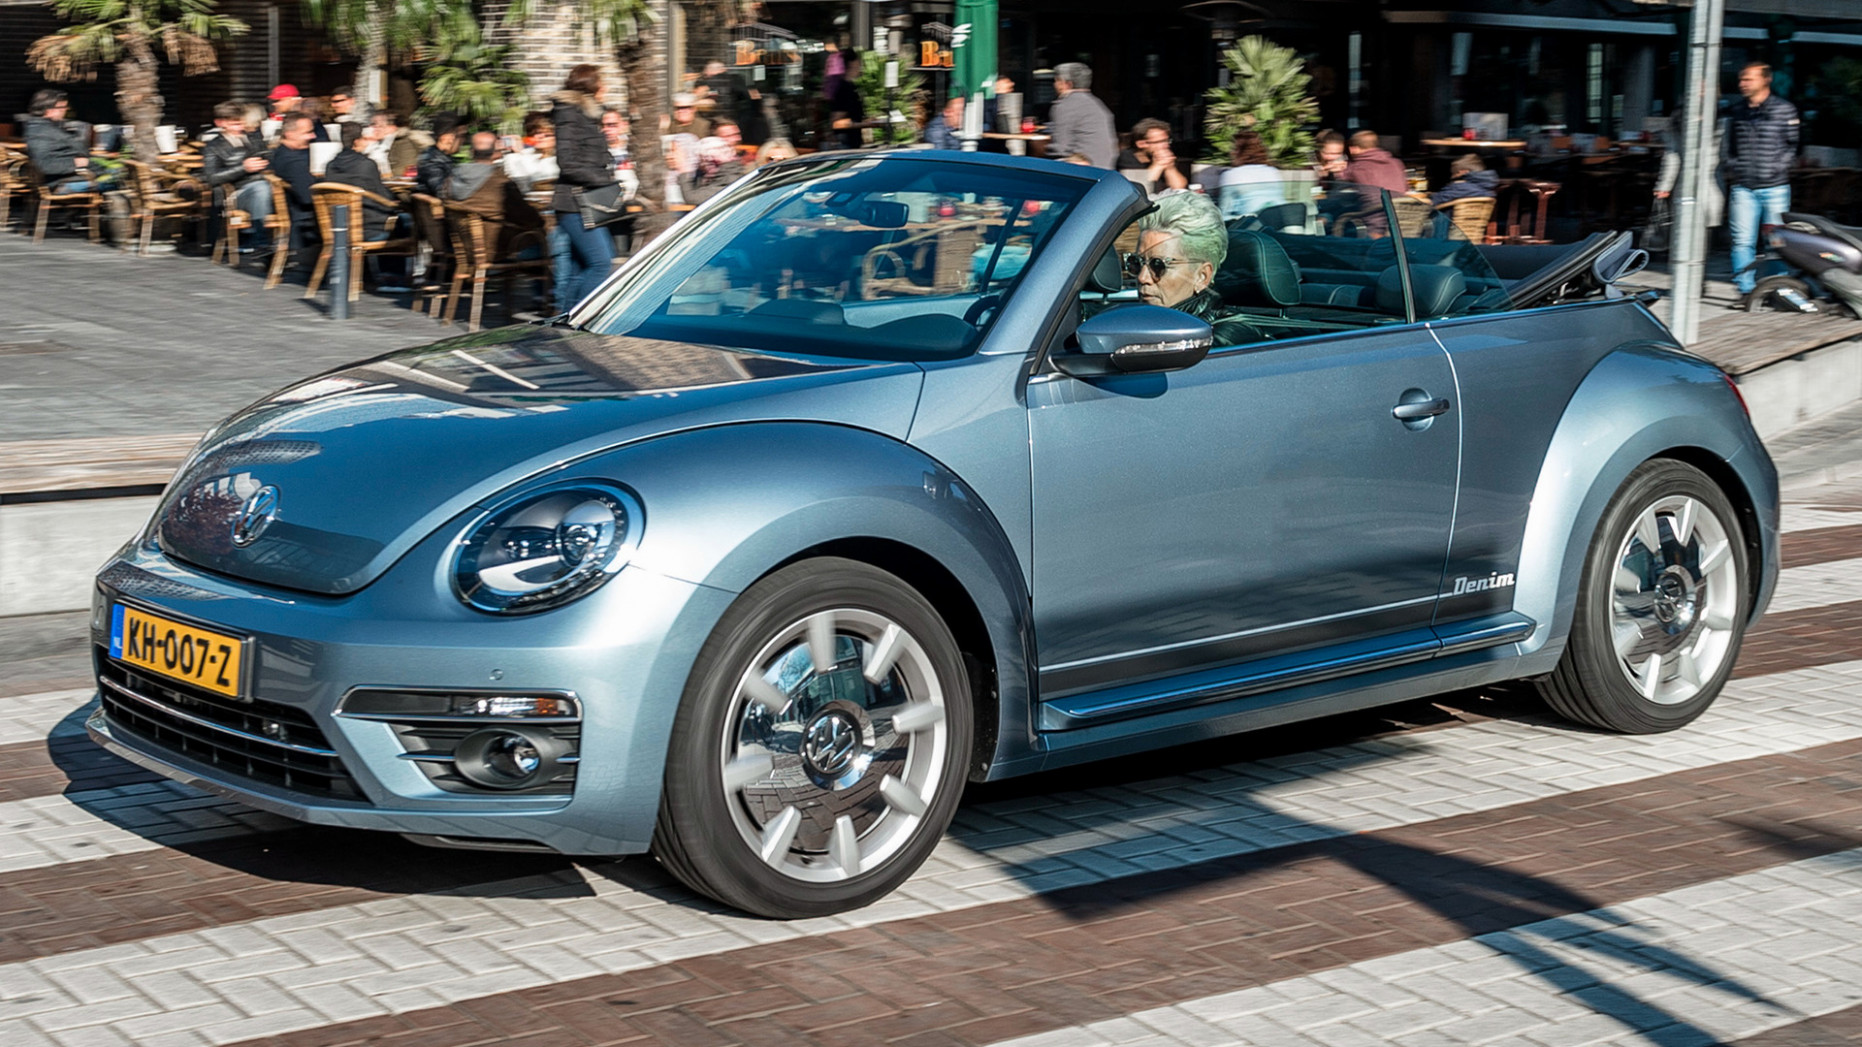 5 Volkswagen Beetle Cabriolet Denim - Wallpapers and HD Images ..